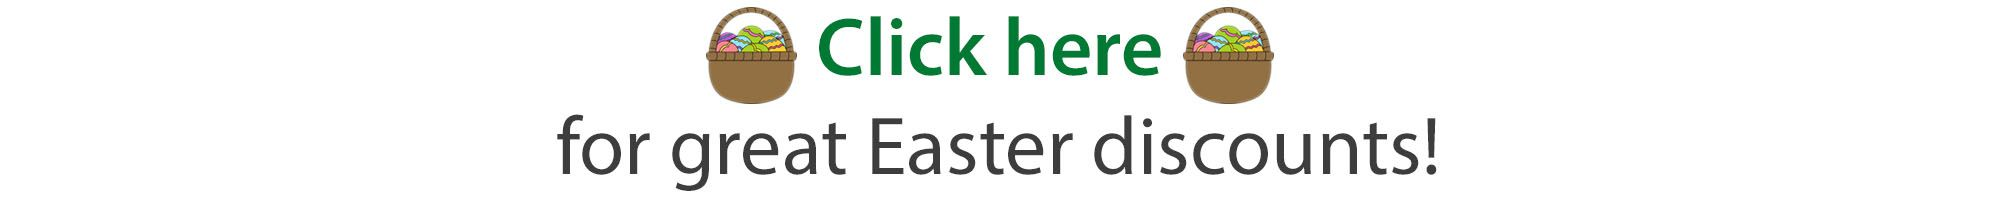 Easter 1 (Great Discounts)